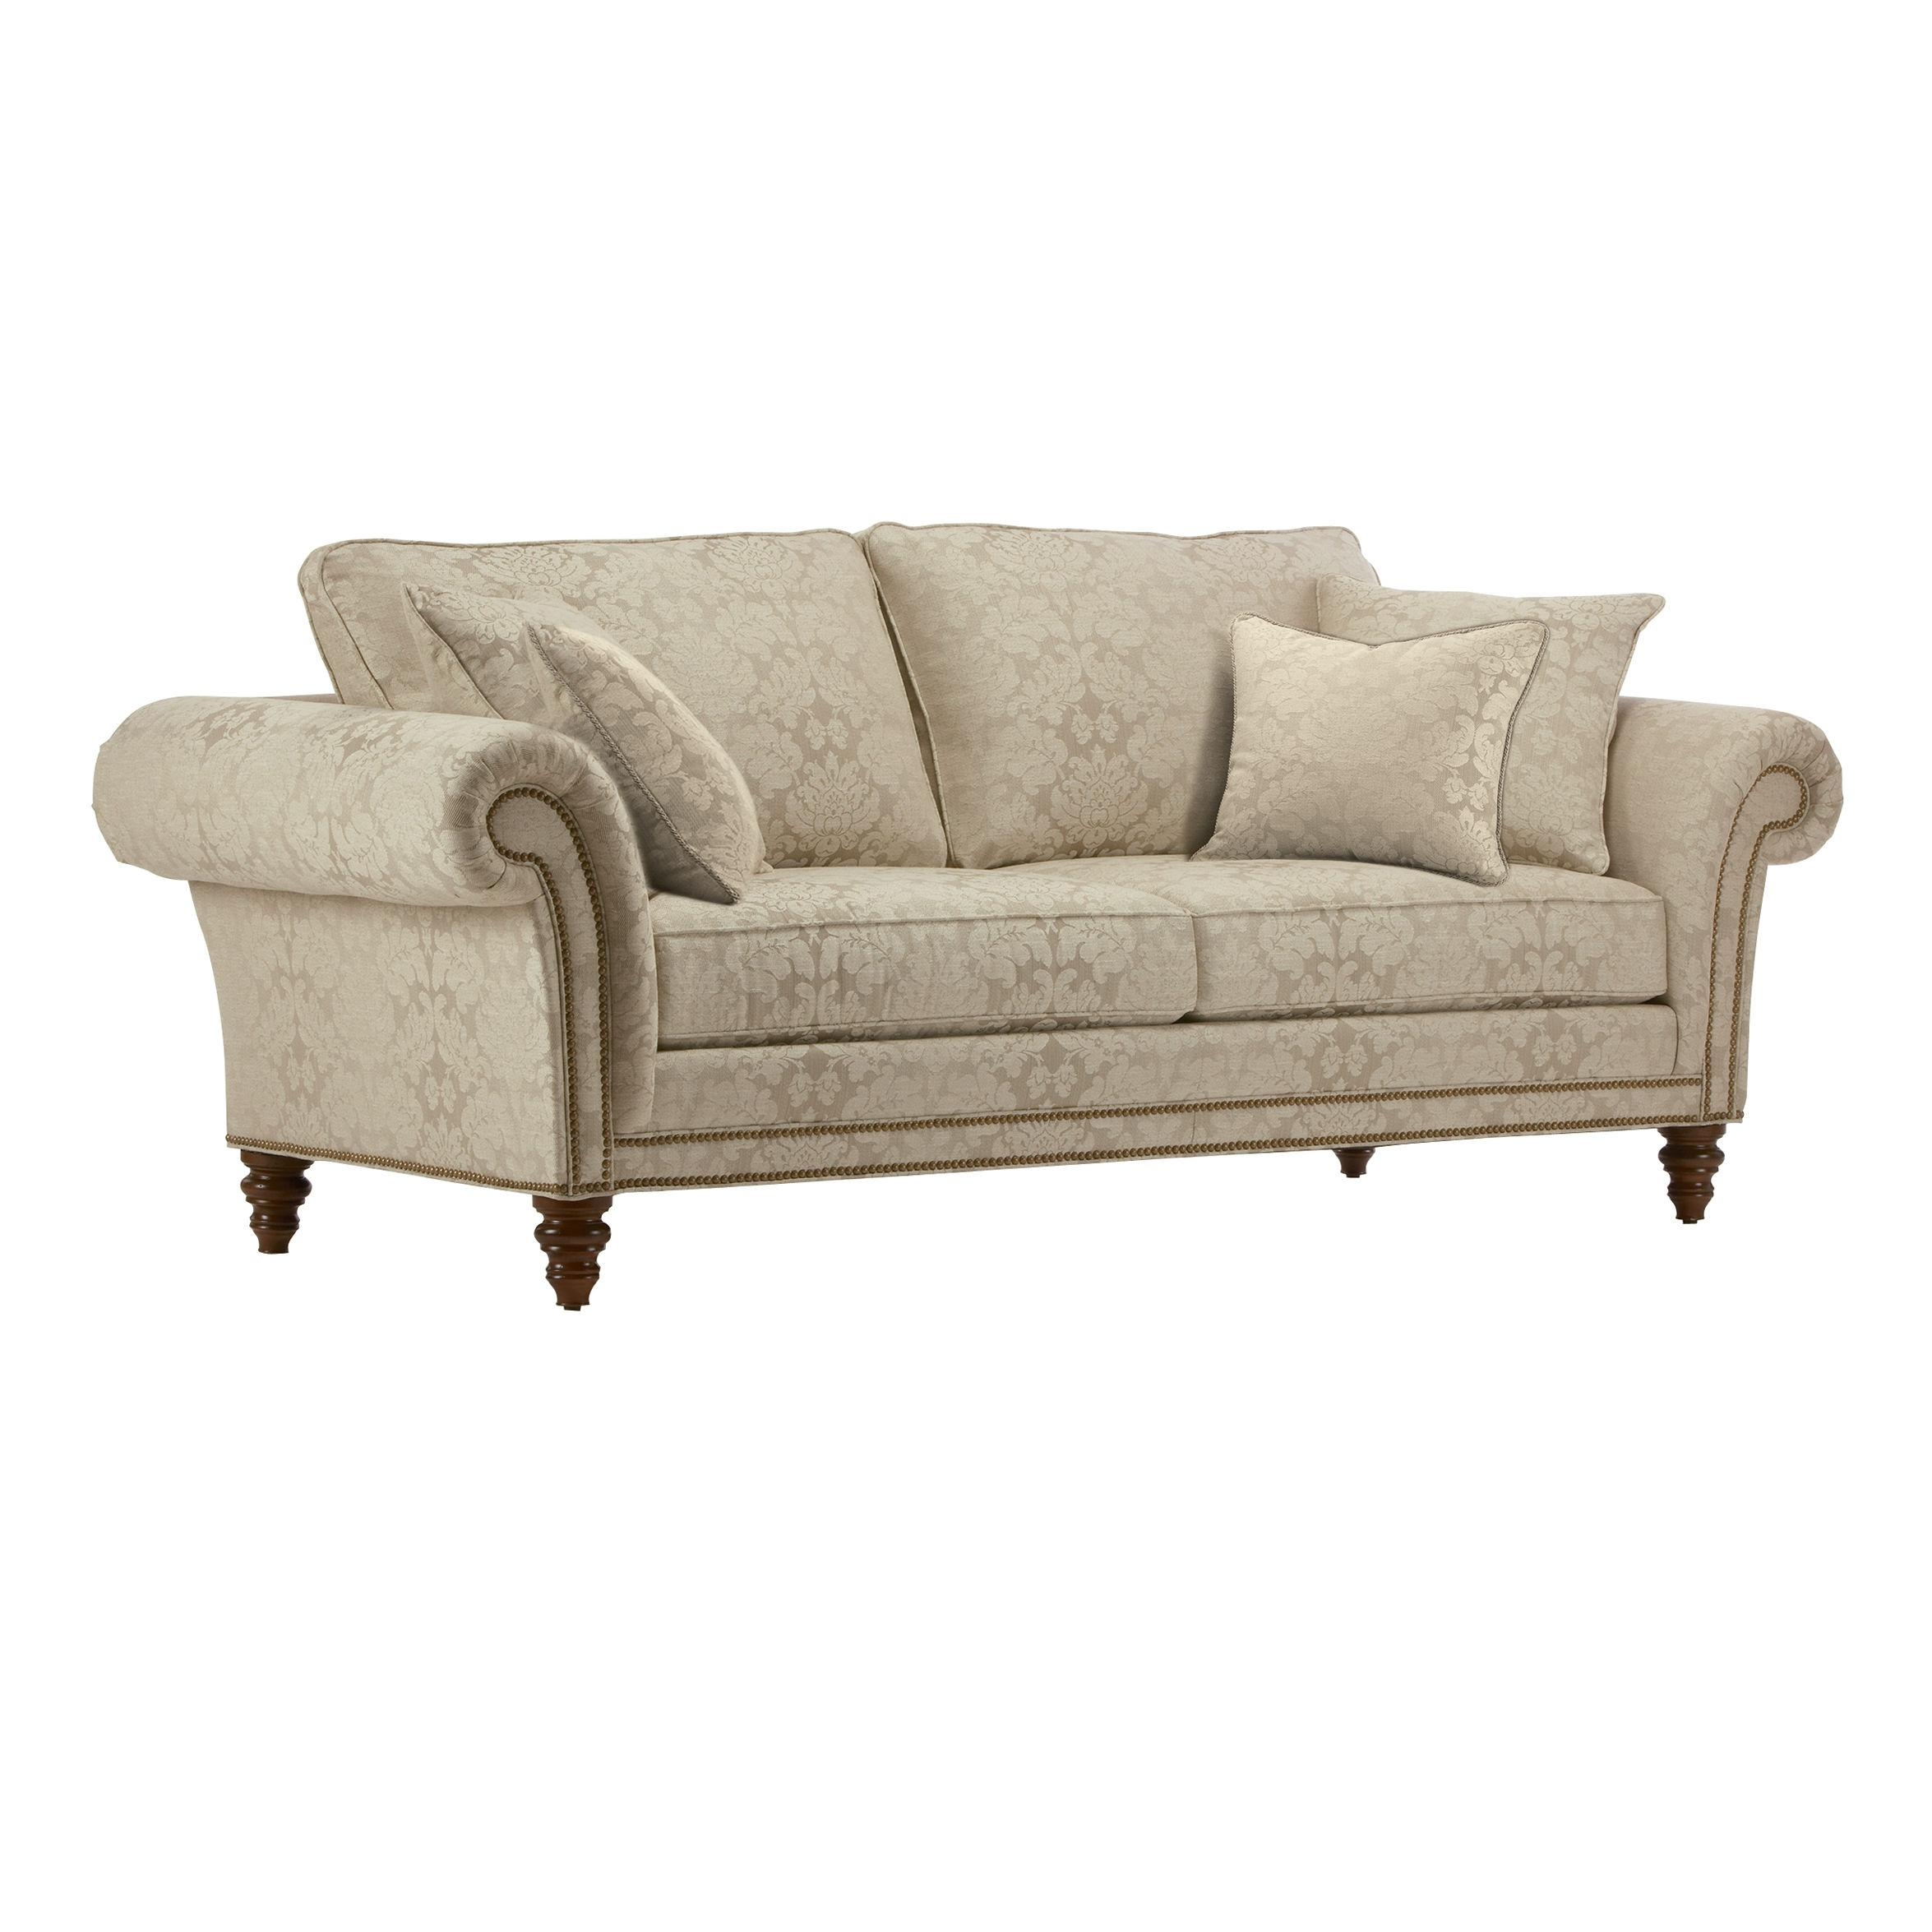 Sofas Center : Frighteninguntry Style Sofas Image Inspirations Throughout Country Style Sofas (Image 18 of 20)